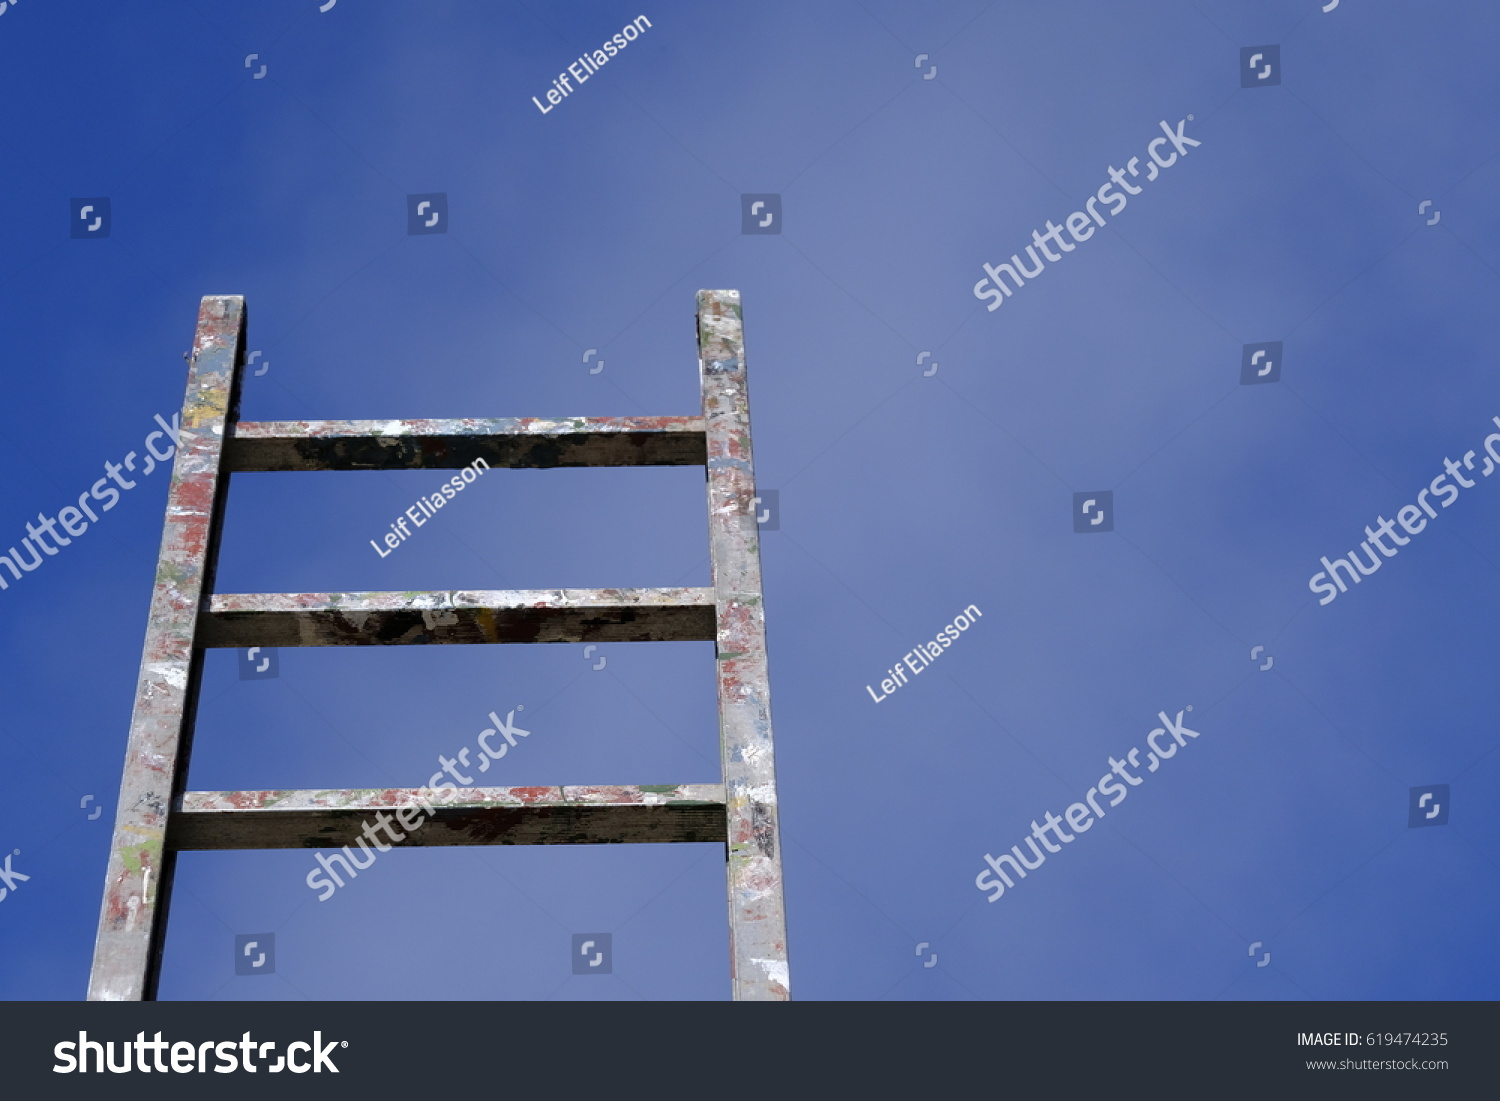 Stairway heaven ladder reaching blue sky stock photo 619474235 stairway to heaven ladder reaching the blue sky a symbol for everything is possible buycottarizona Image collections